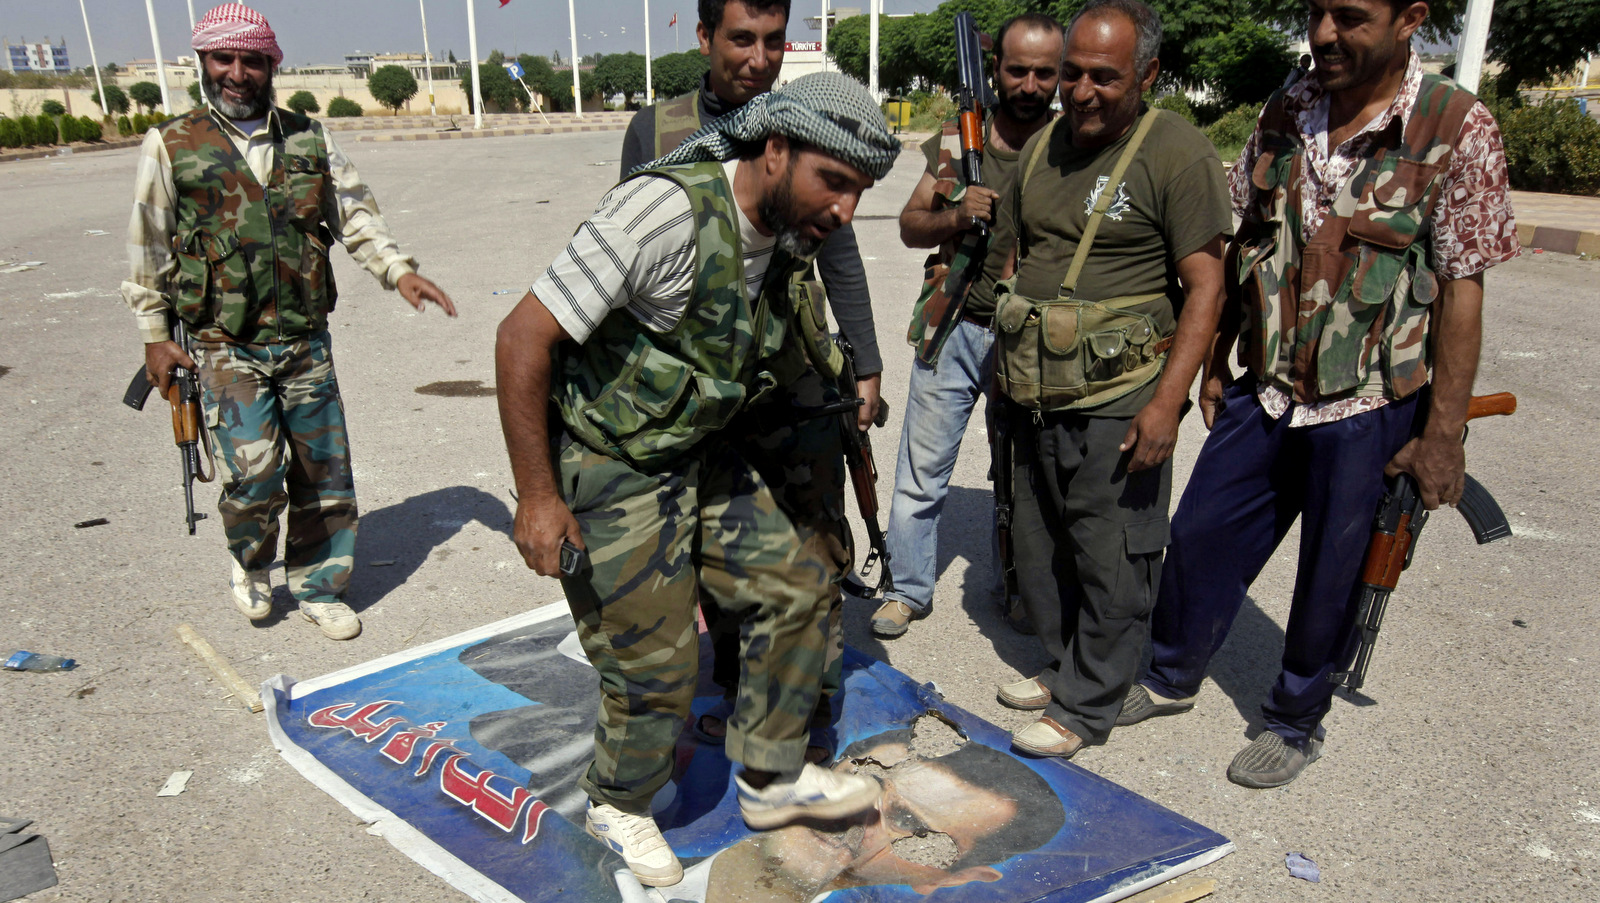 A Free Syrian Army fighter from the Al-Faruk brigade, center, steps on a portrait of Syrian President Bashar Assad, Sept. 22, 2012 (AP/Hussein Malla)